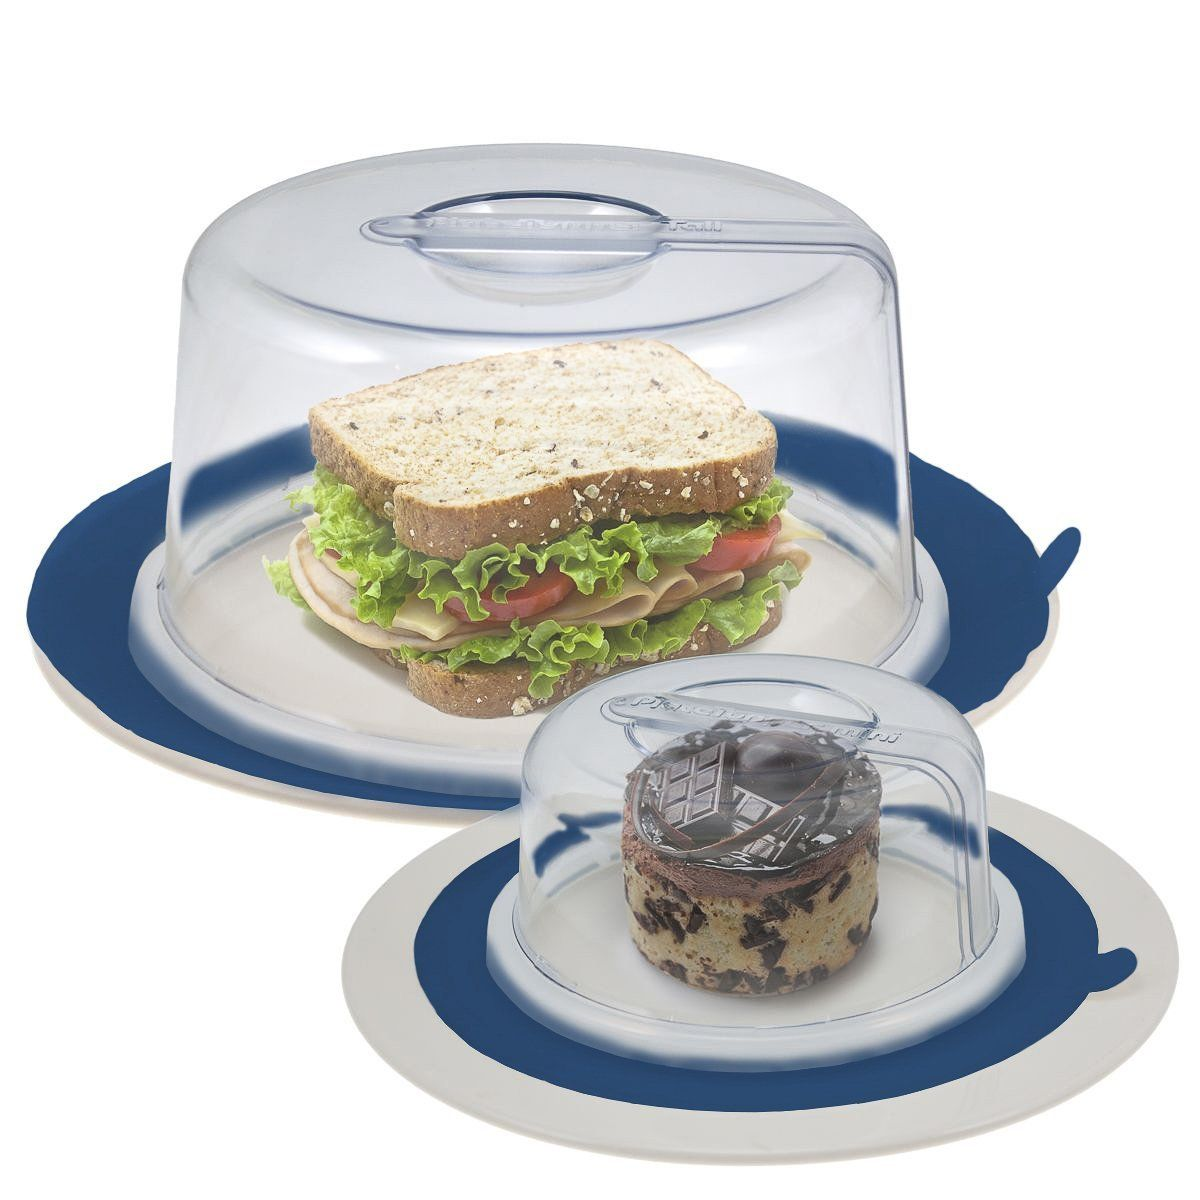 2 Platetopper Mini Tall Universal Leftover Lid Microwave Cover